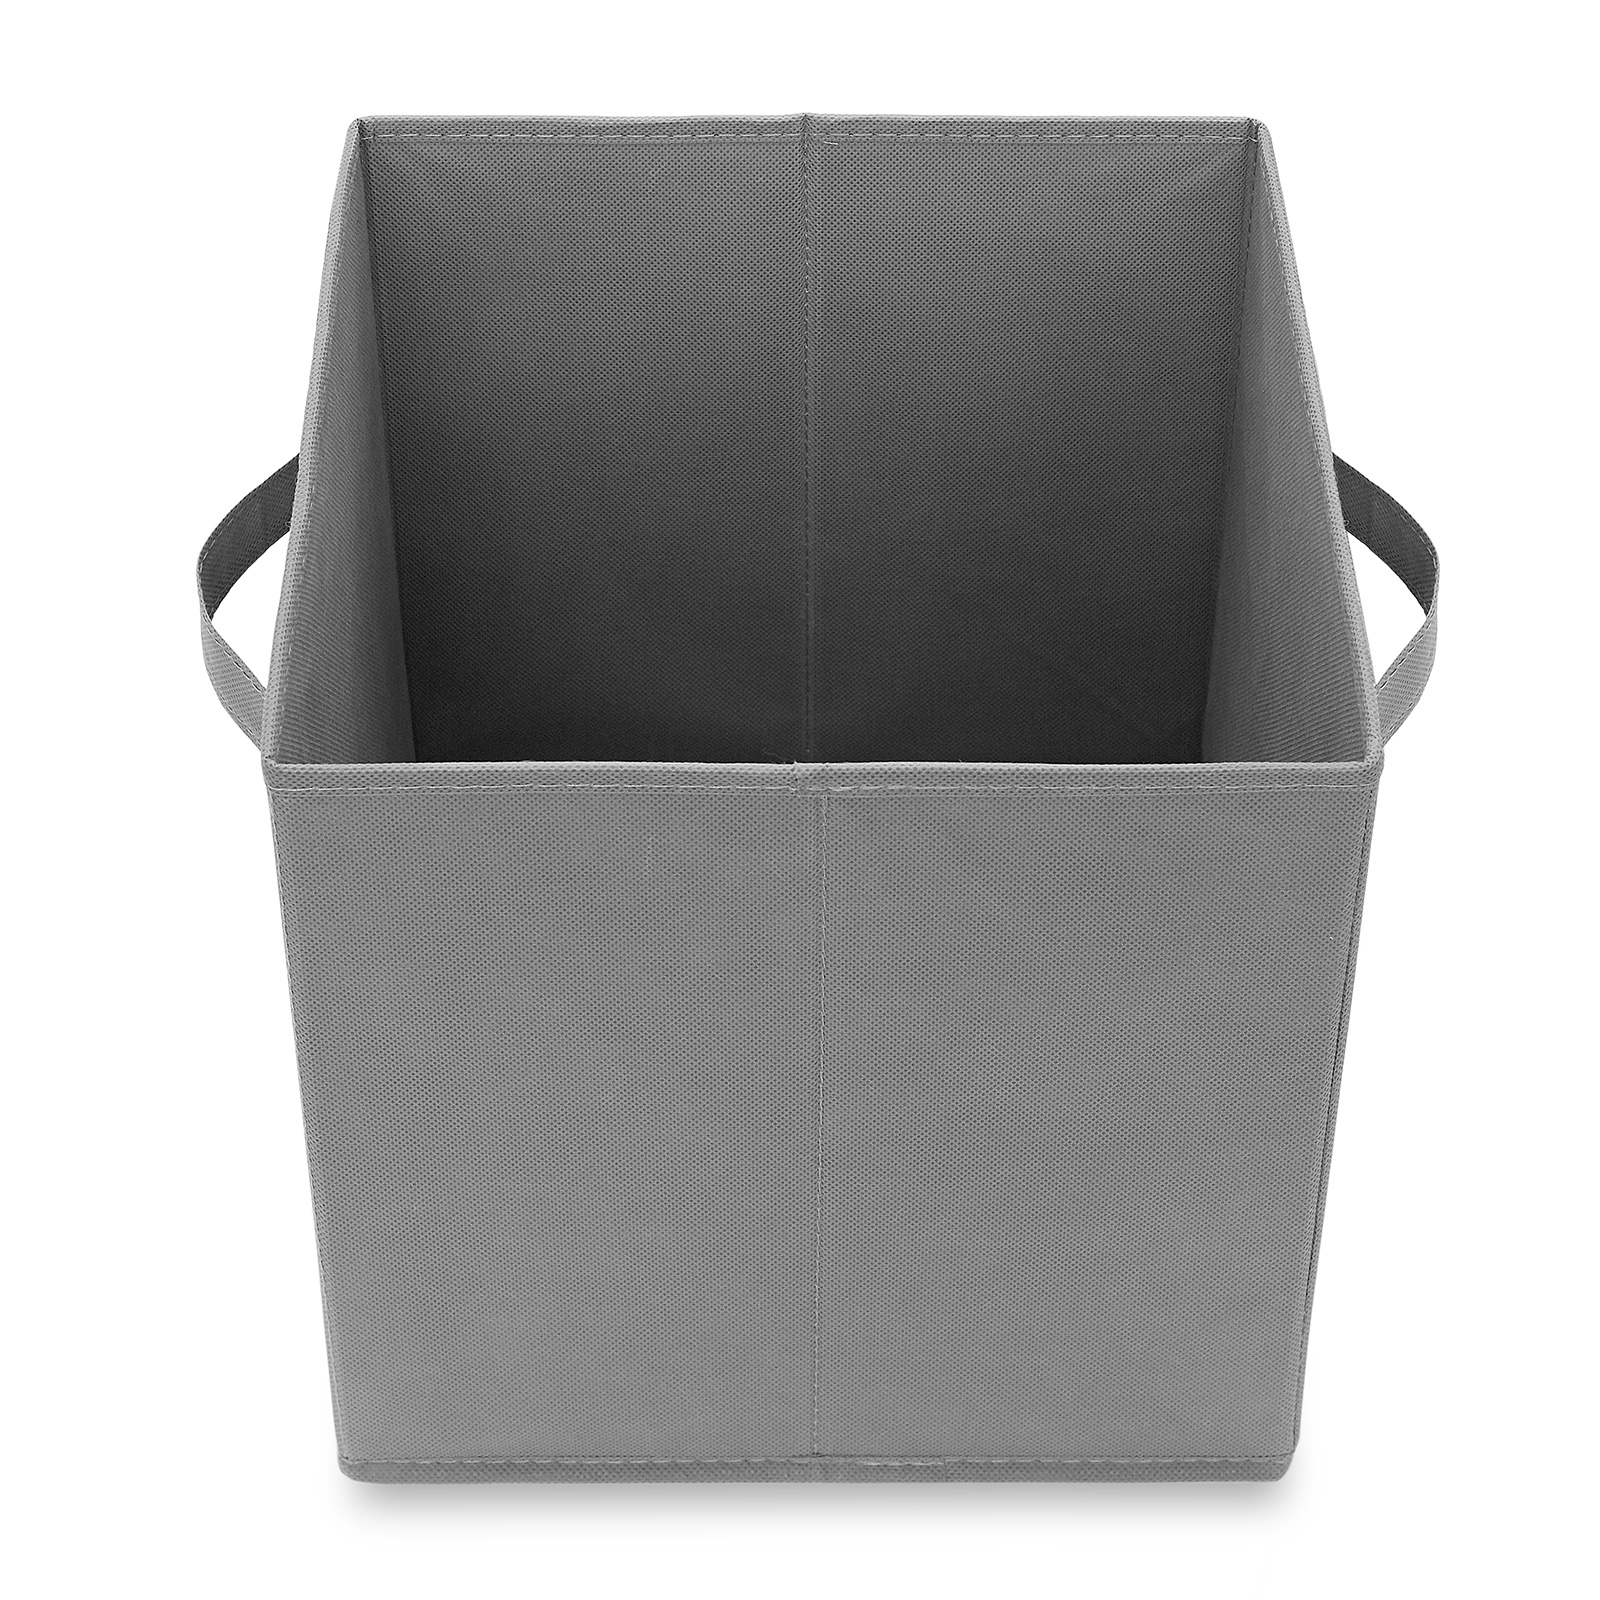 6-Collapsible-Foldable-Cloth-Fabric-Cubby-Cube-Storage-Bins-Baskets-for-Shelves thumbnail 21